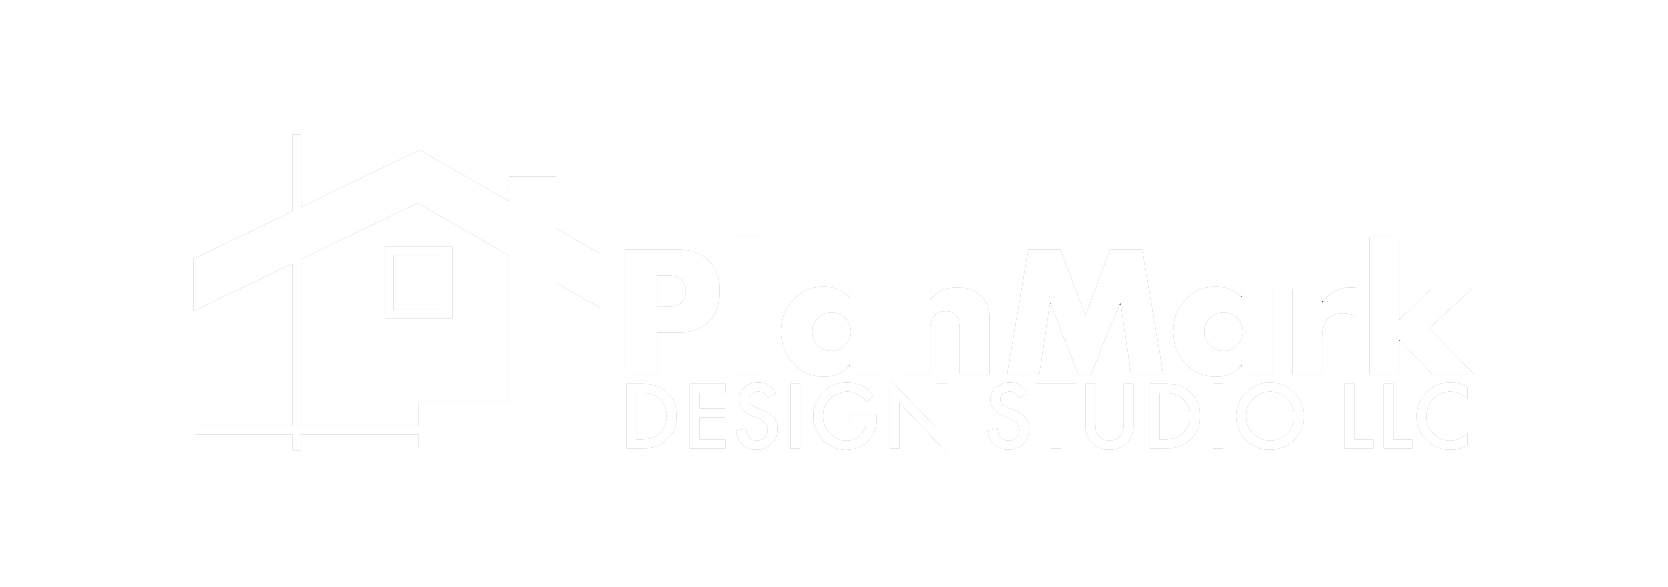 PlanMark Design Studio